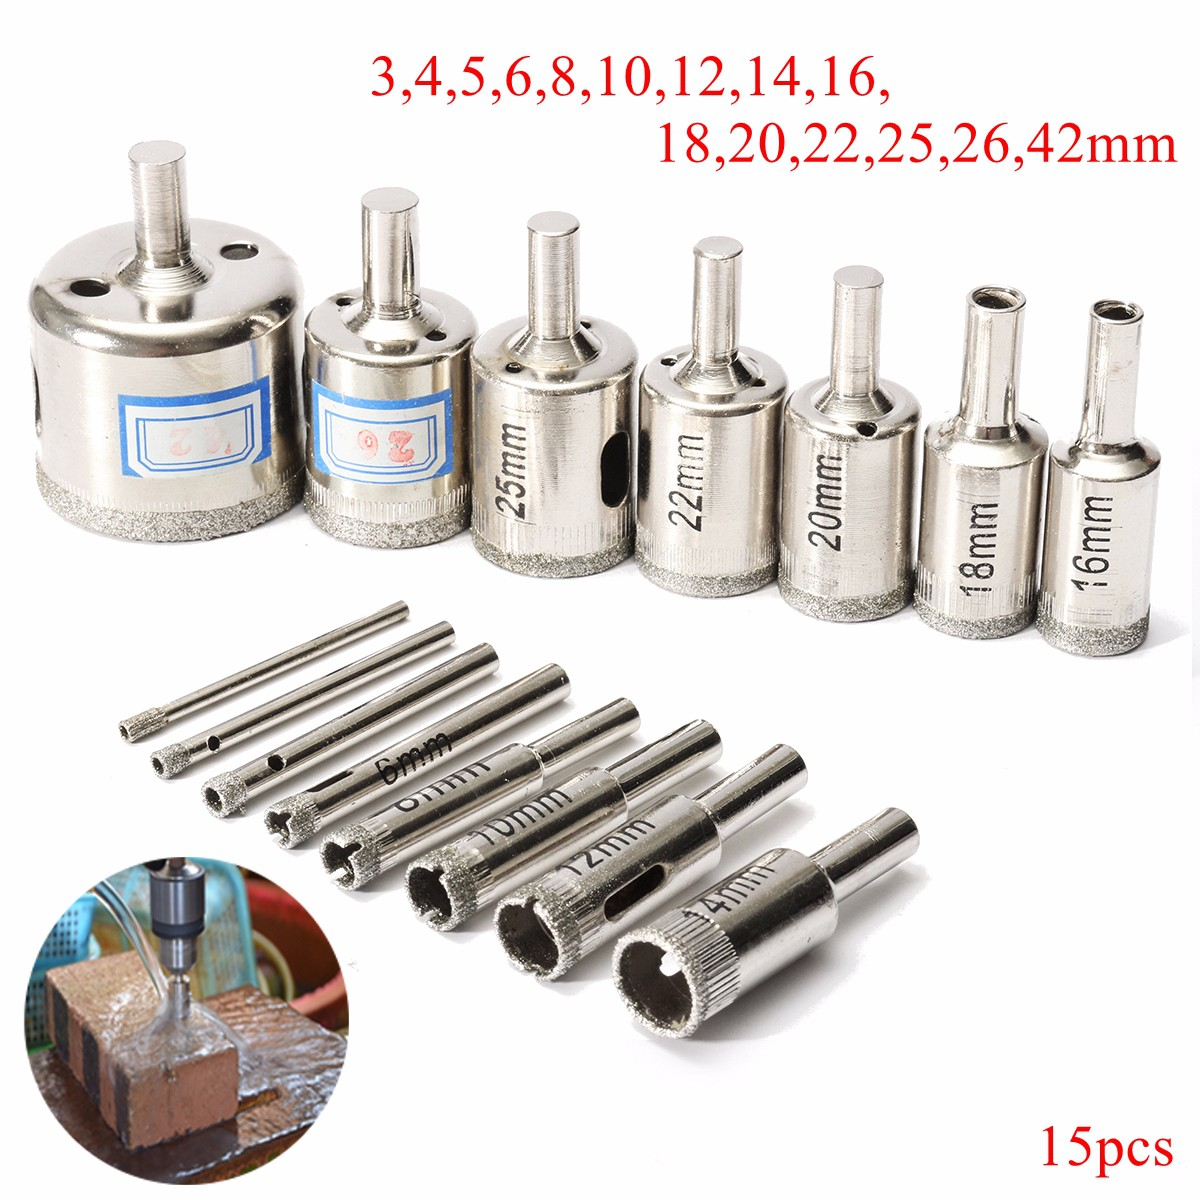 15pcs Hole Saw Set Marble Core Drill Bits 3mm-42mm Diamond Cutter Tool for Glass Marble Tile Ceramic Glass Cutting Drilling 10pcs mayitr diamond holesaw 6mm drill bits drilling tool hole saw ceramic tile glass slate porcelain marble for power drills